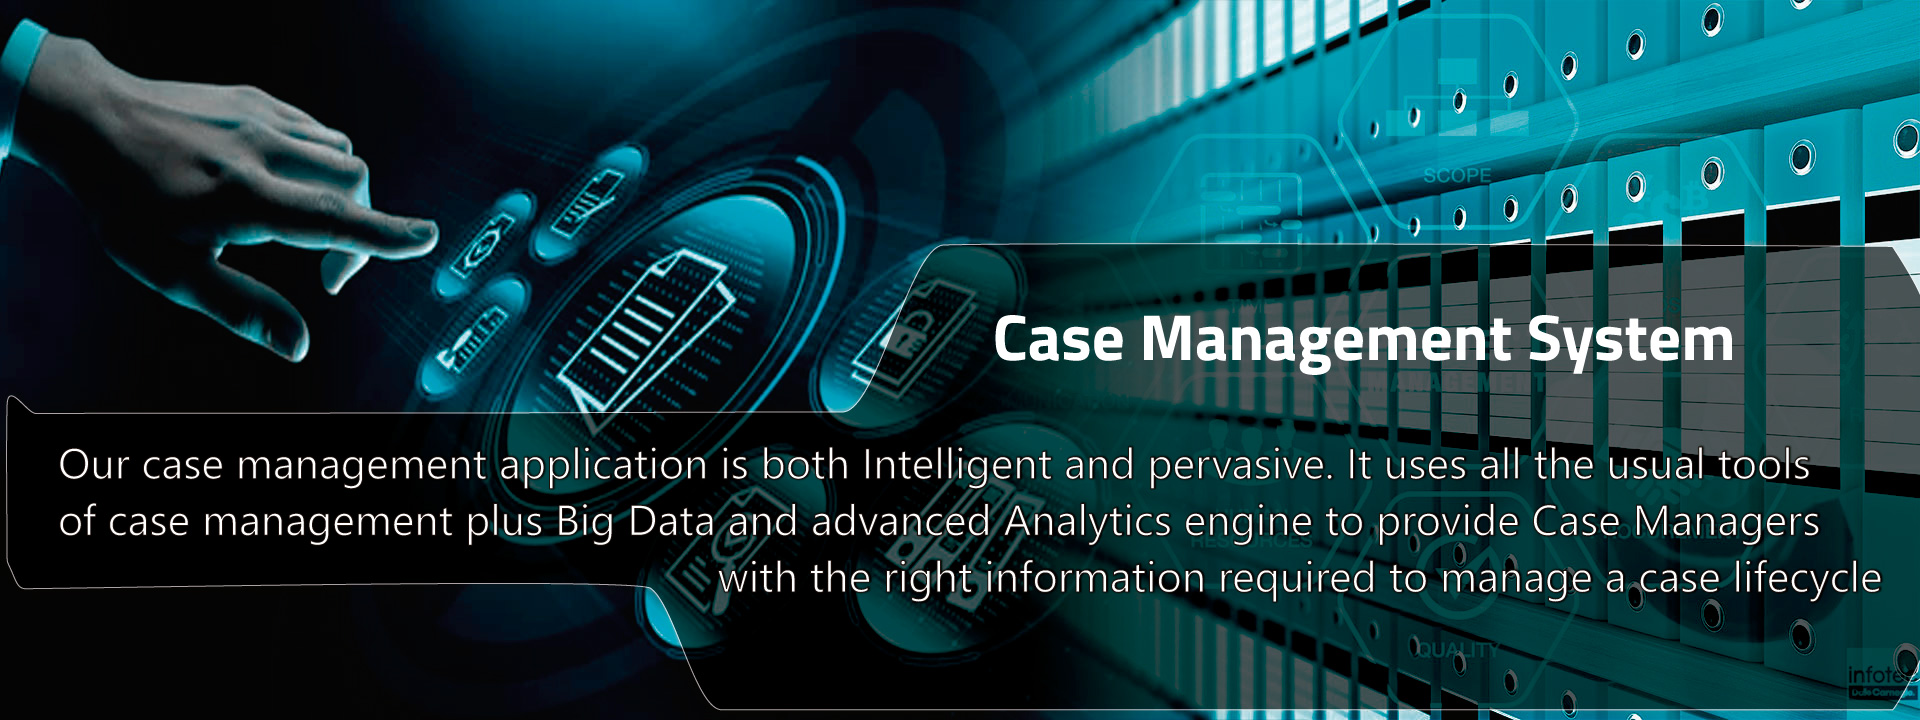 case-management-systems-ws